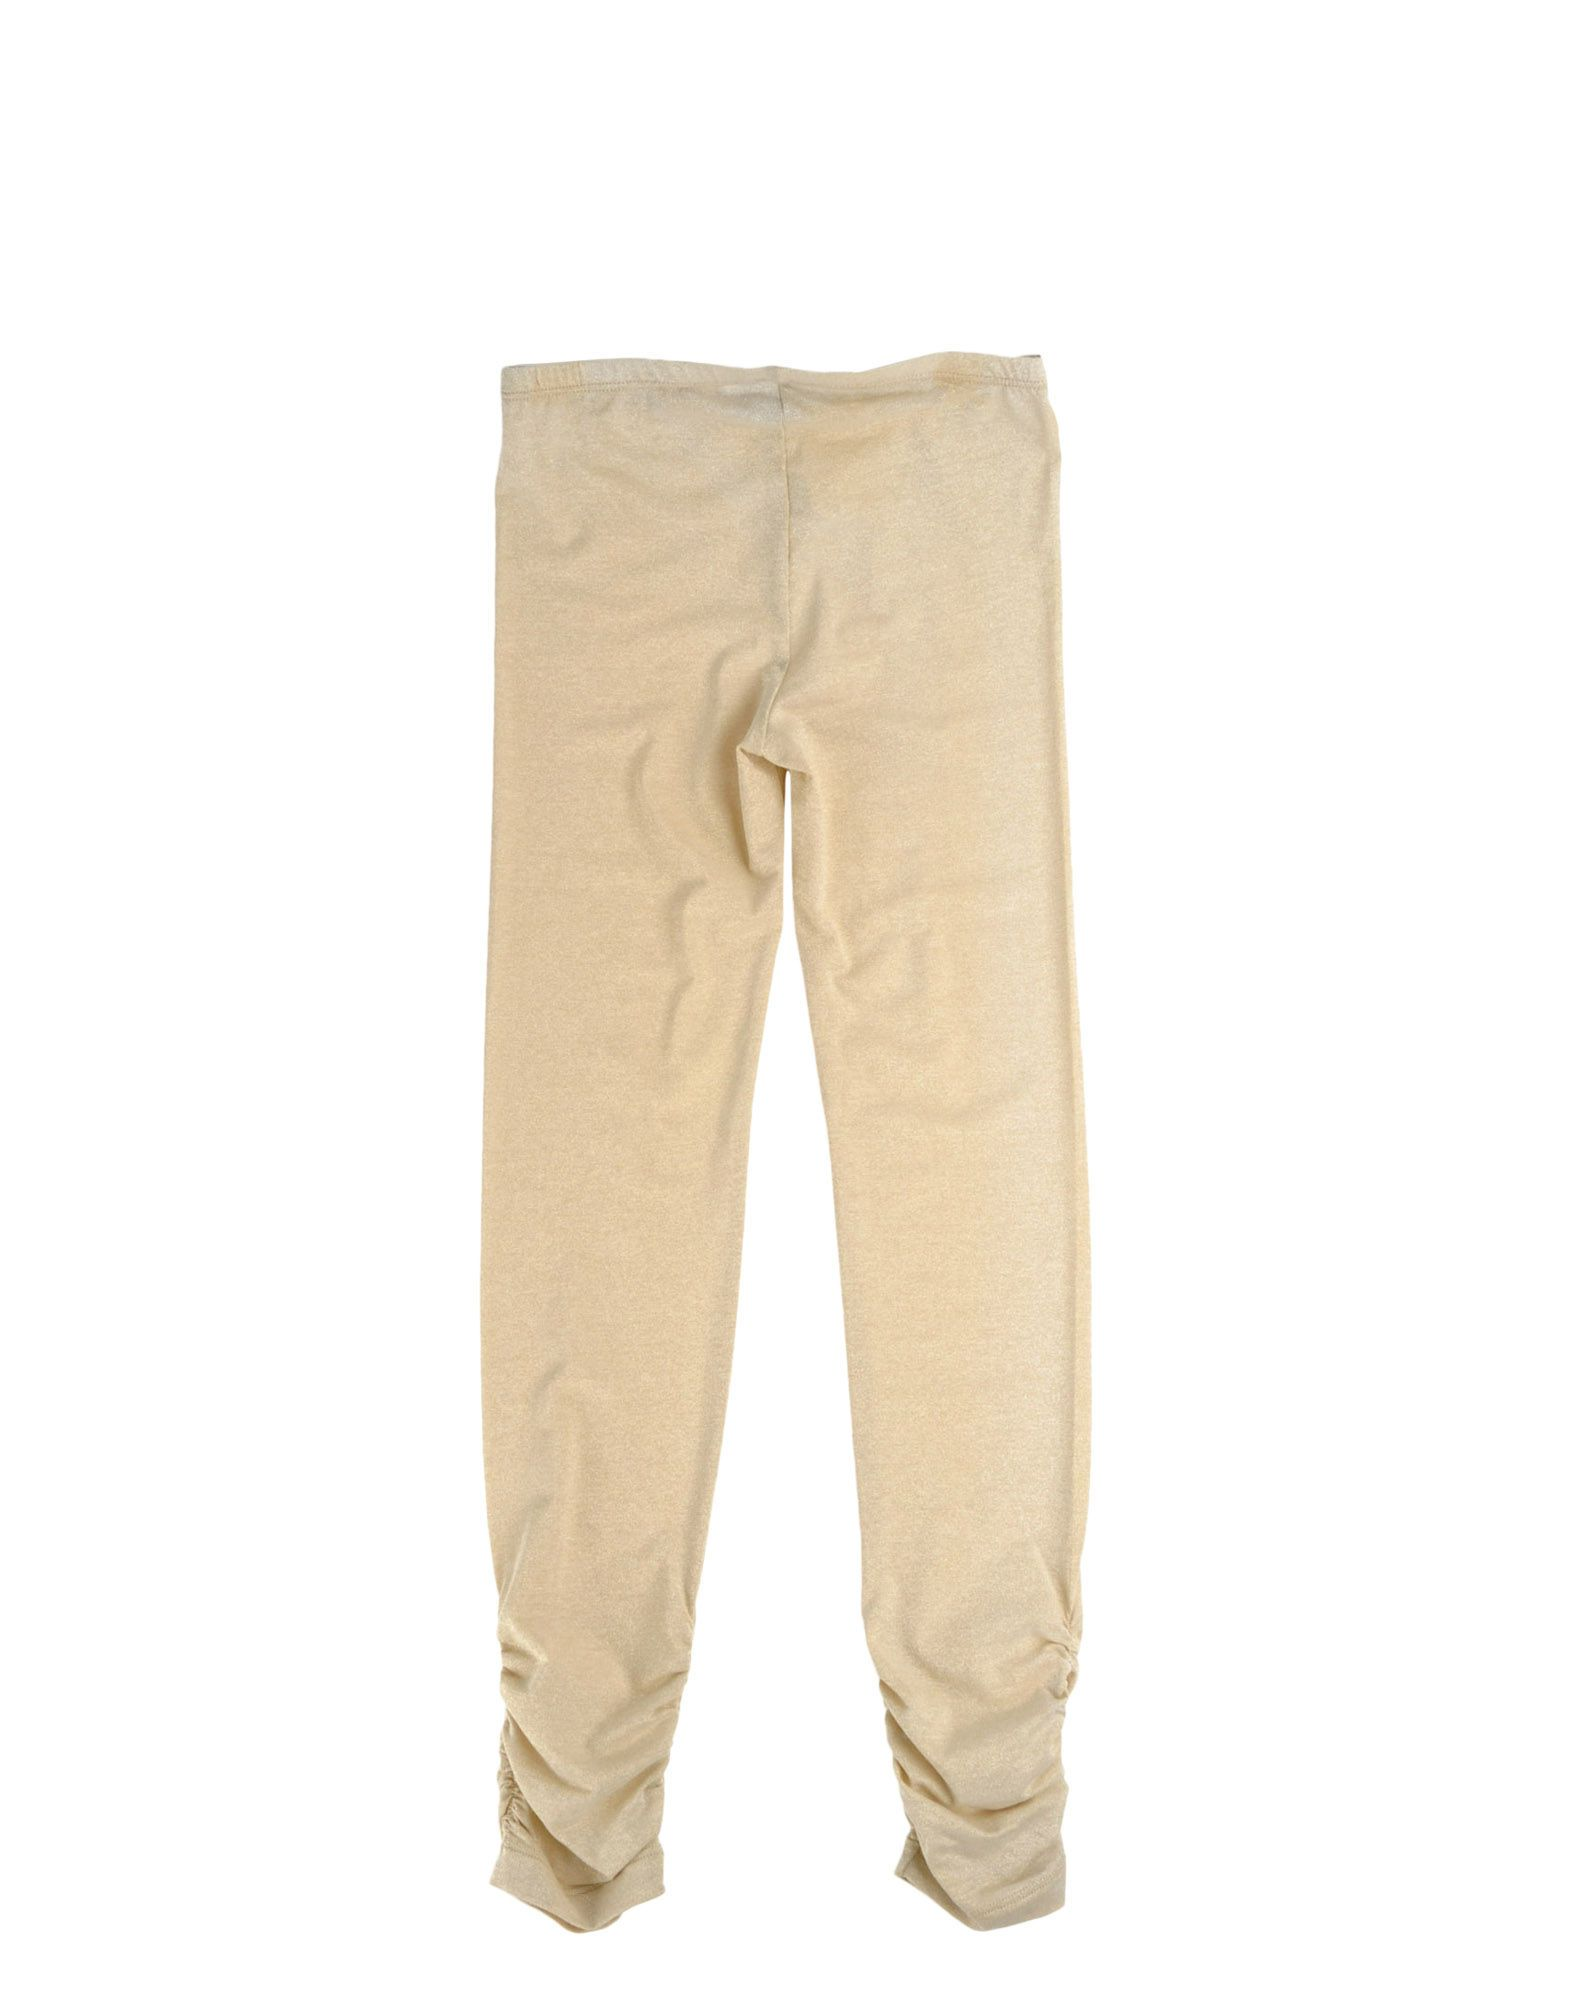 TROUSERS Miss Grant Beige Girl Cotton